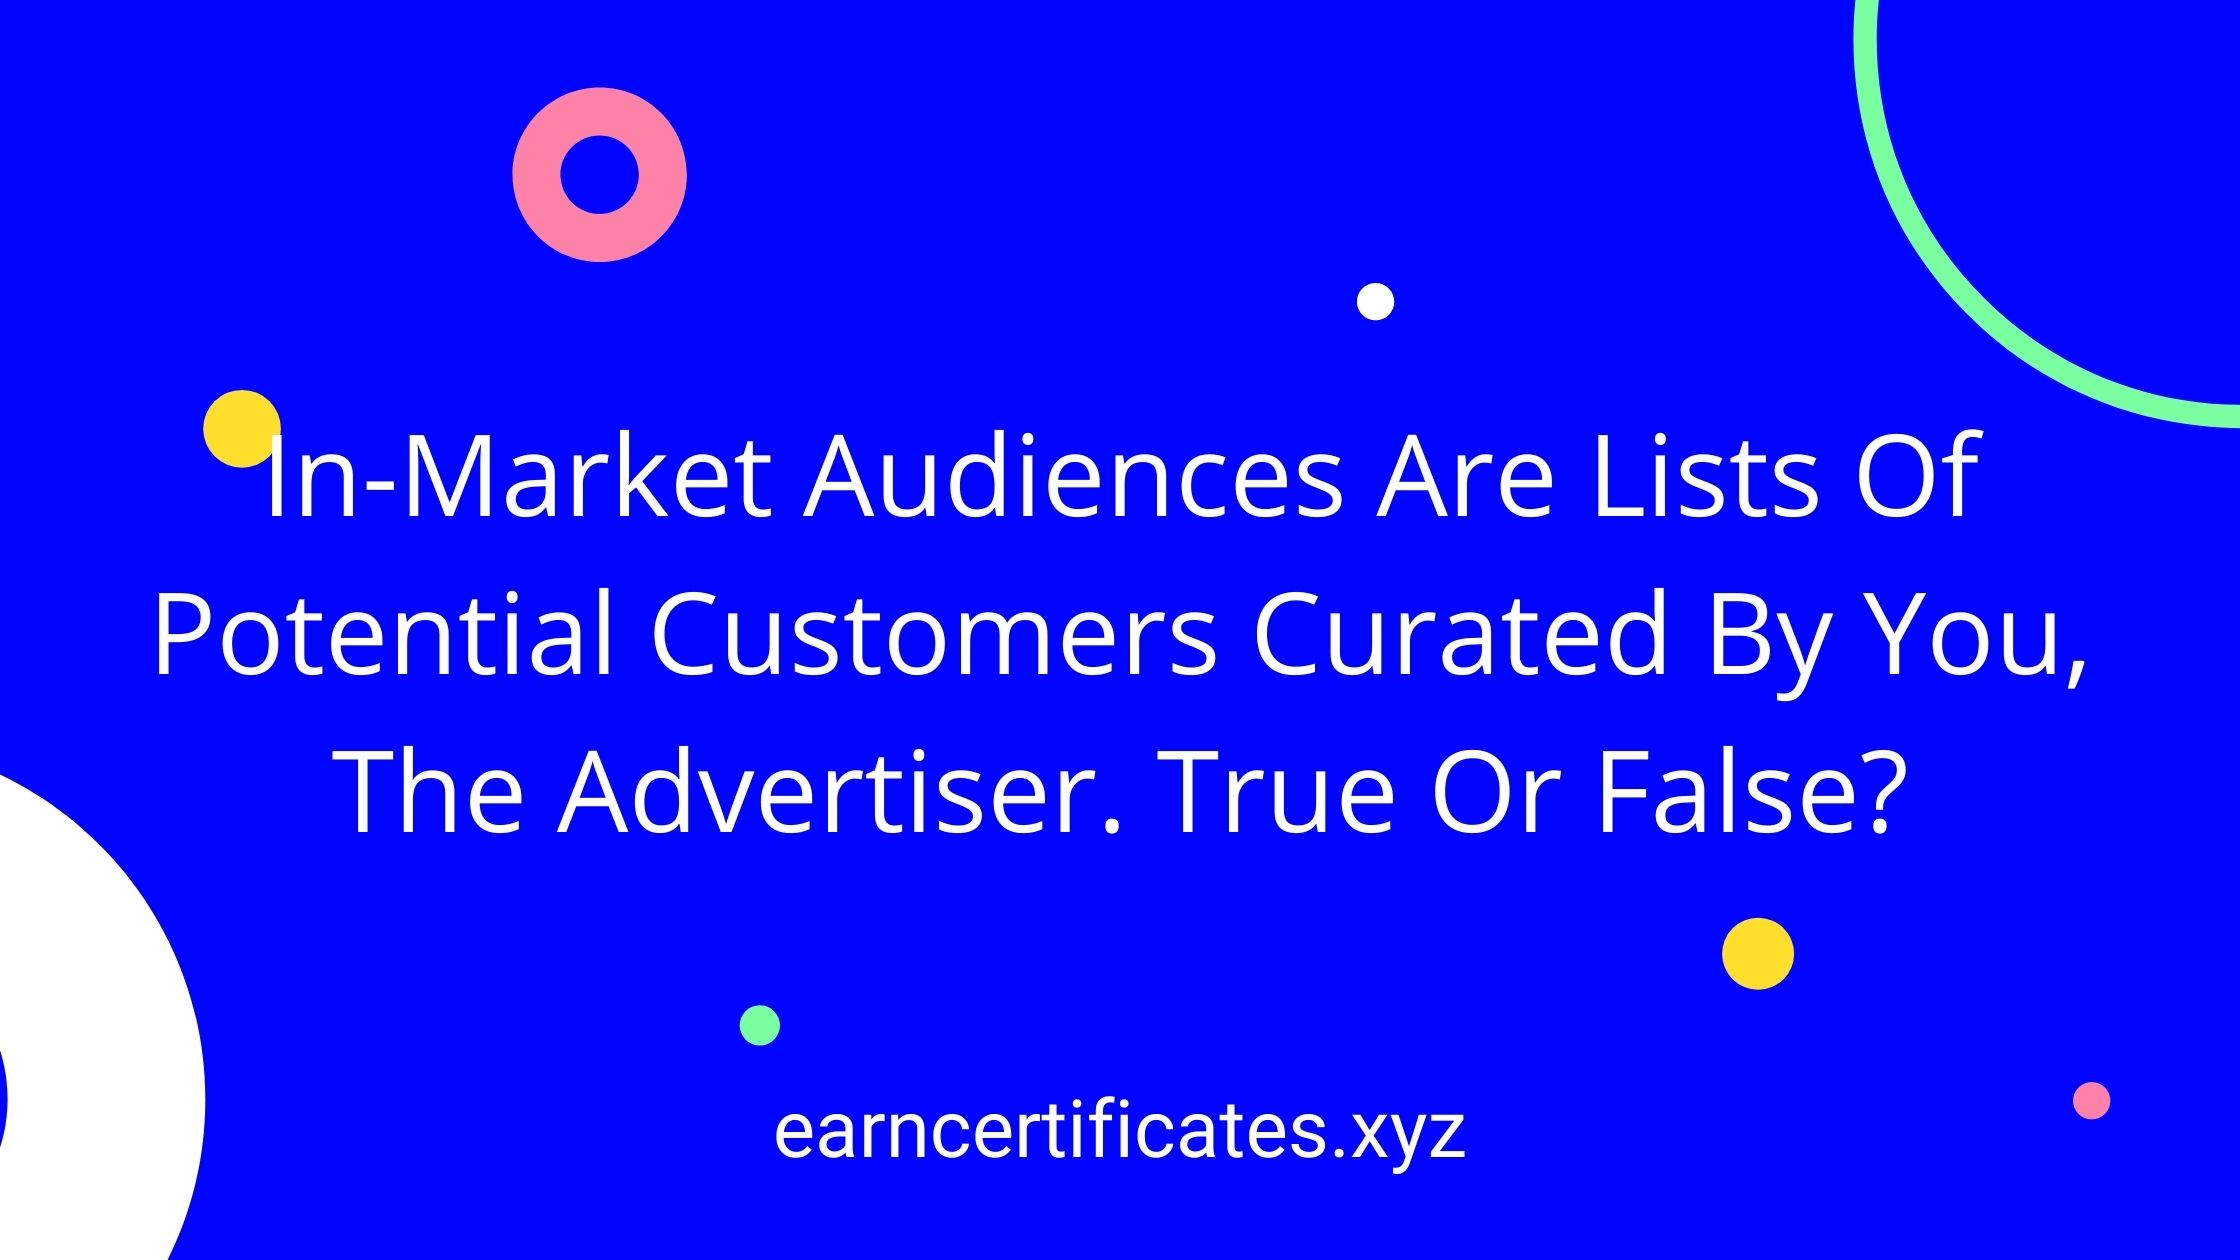 In-Market Audiences Are Lists Of Potential Customers Curated By You, The Advertiser. True Or False?